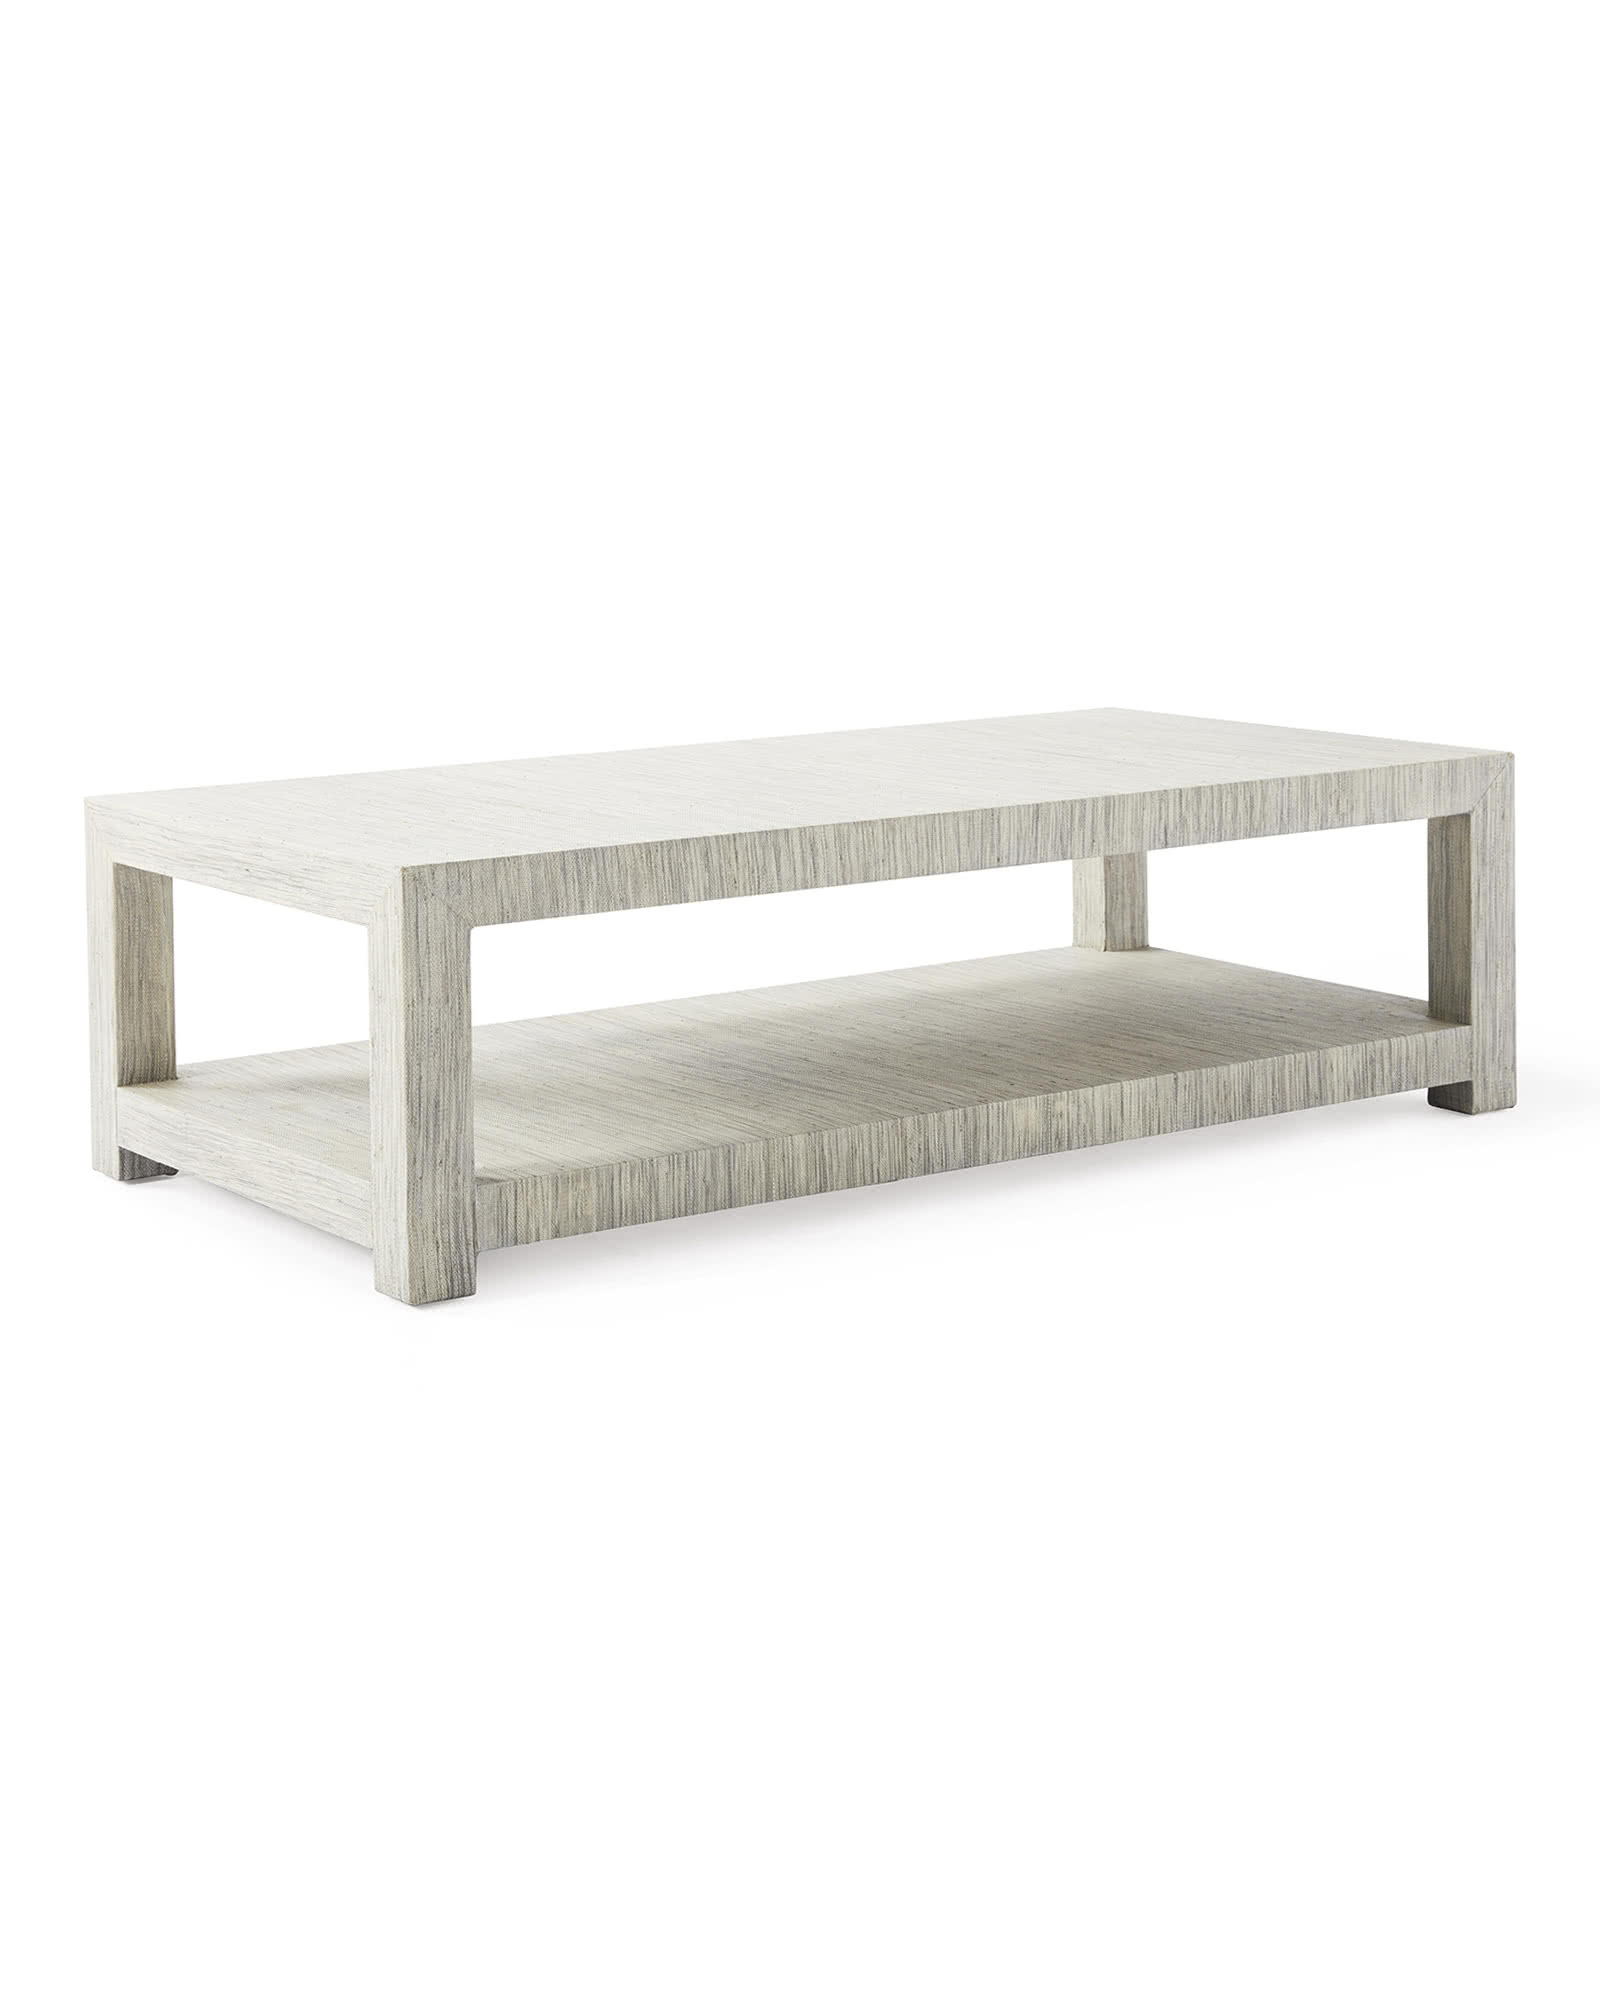 Blake Raffia Rectangular Coffee Table, Fog